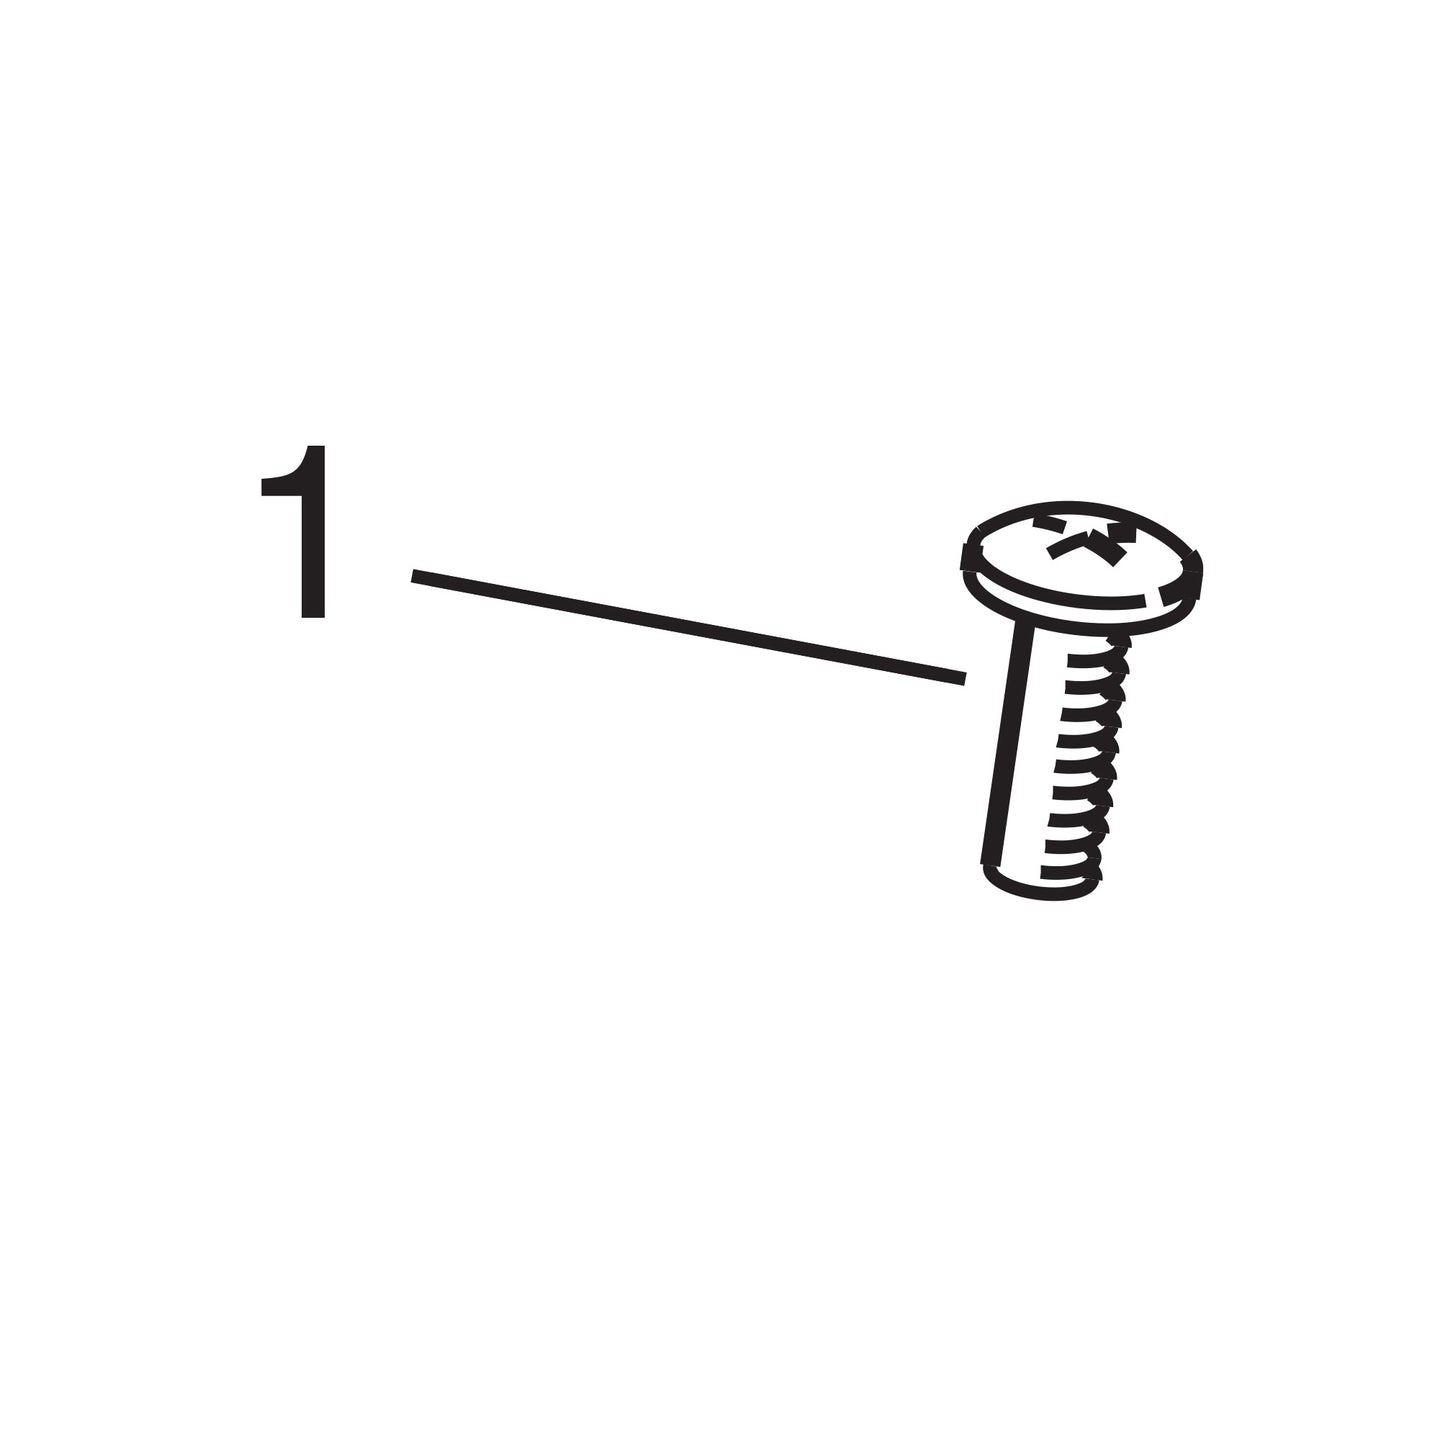 Panel Mounting Stainless Screw Kit - 1948-51 Models